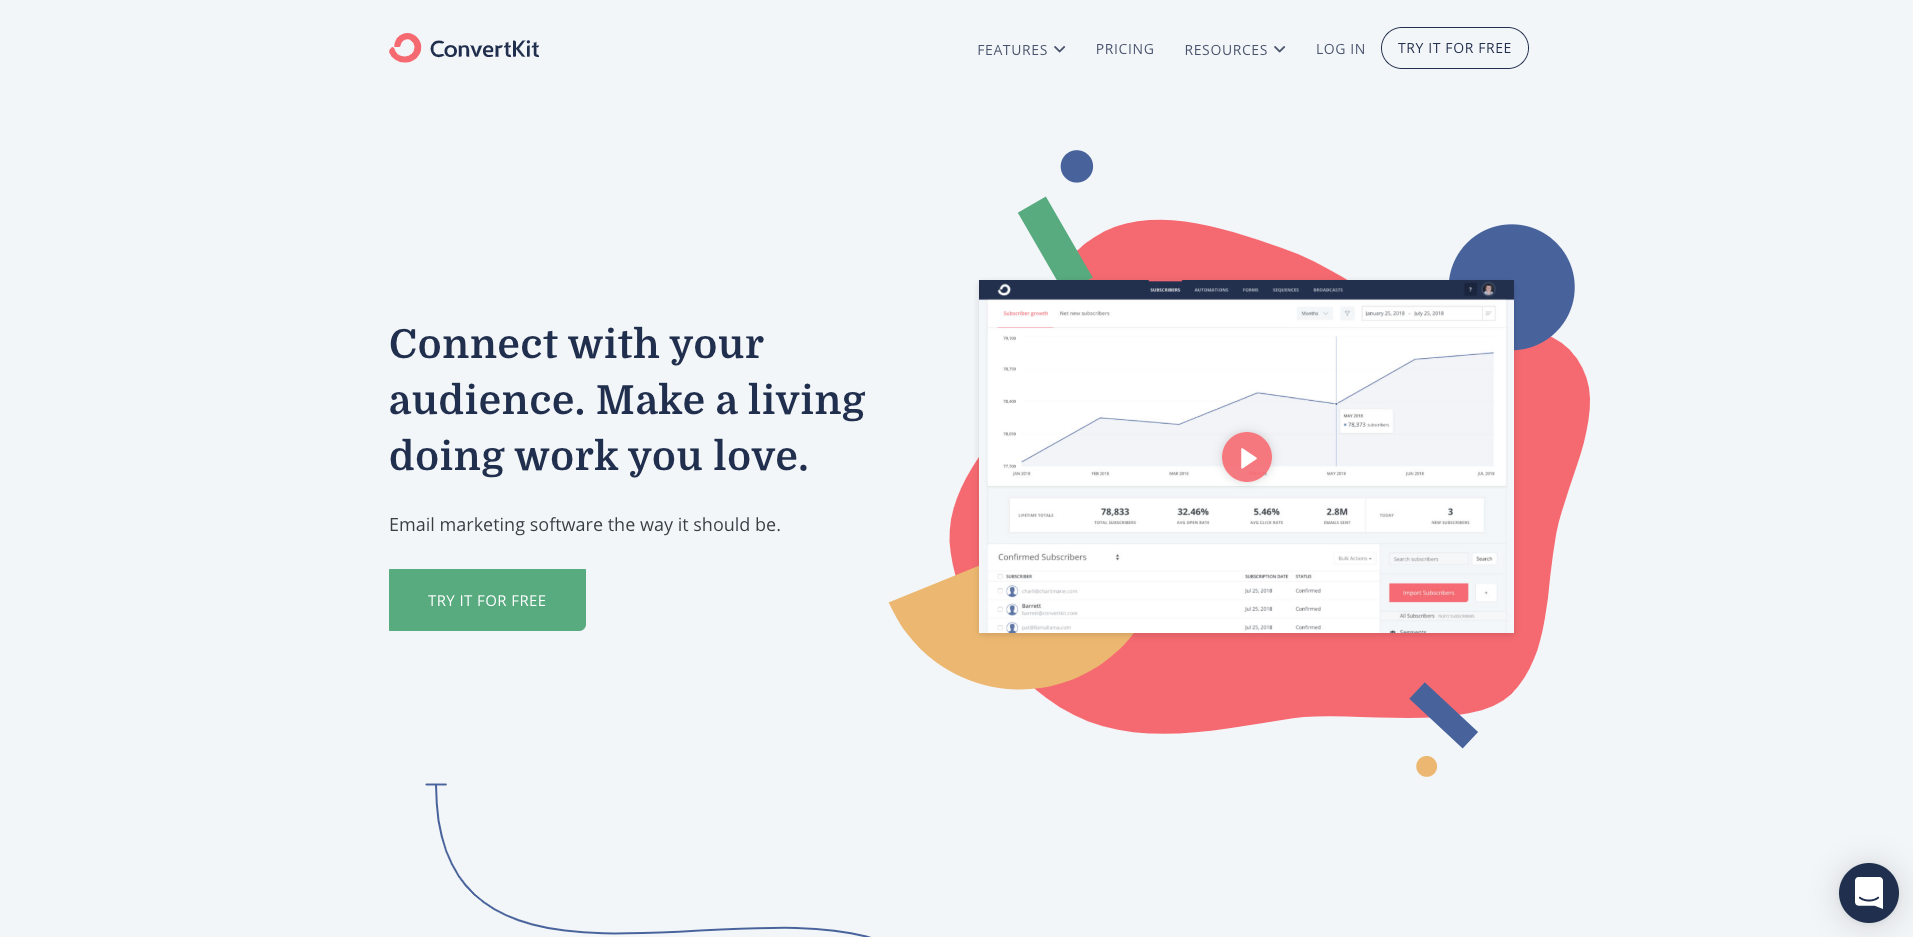 convertkit homepage screenshot